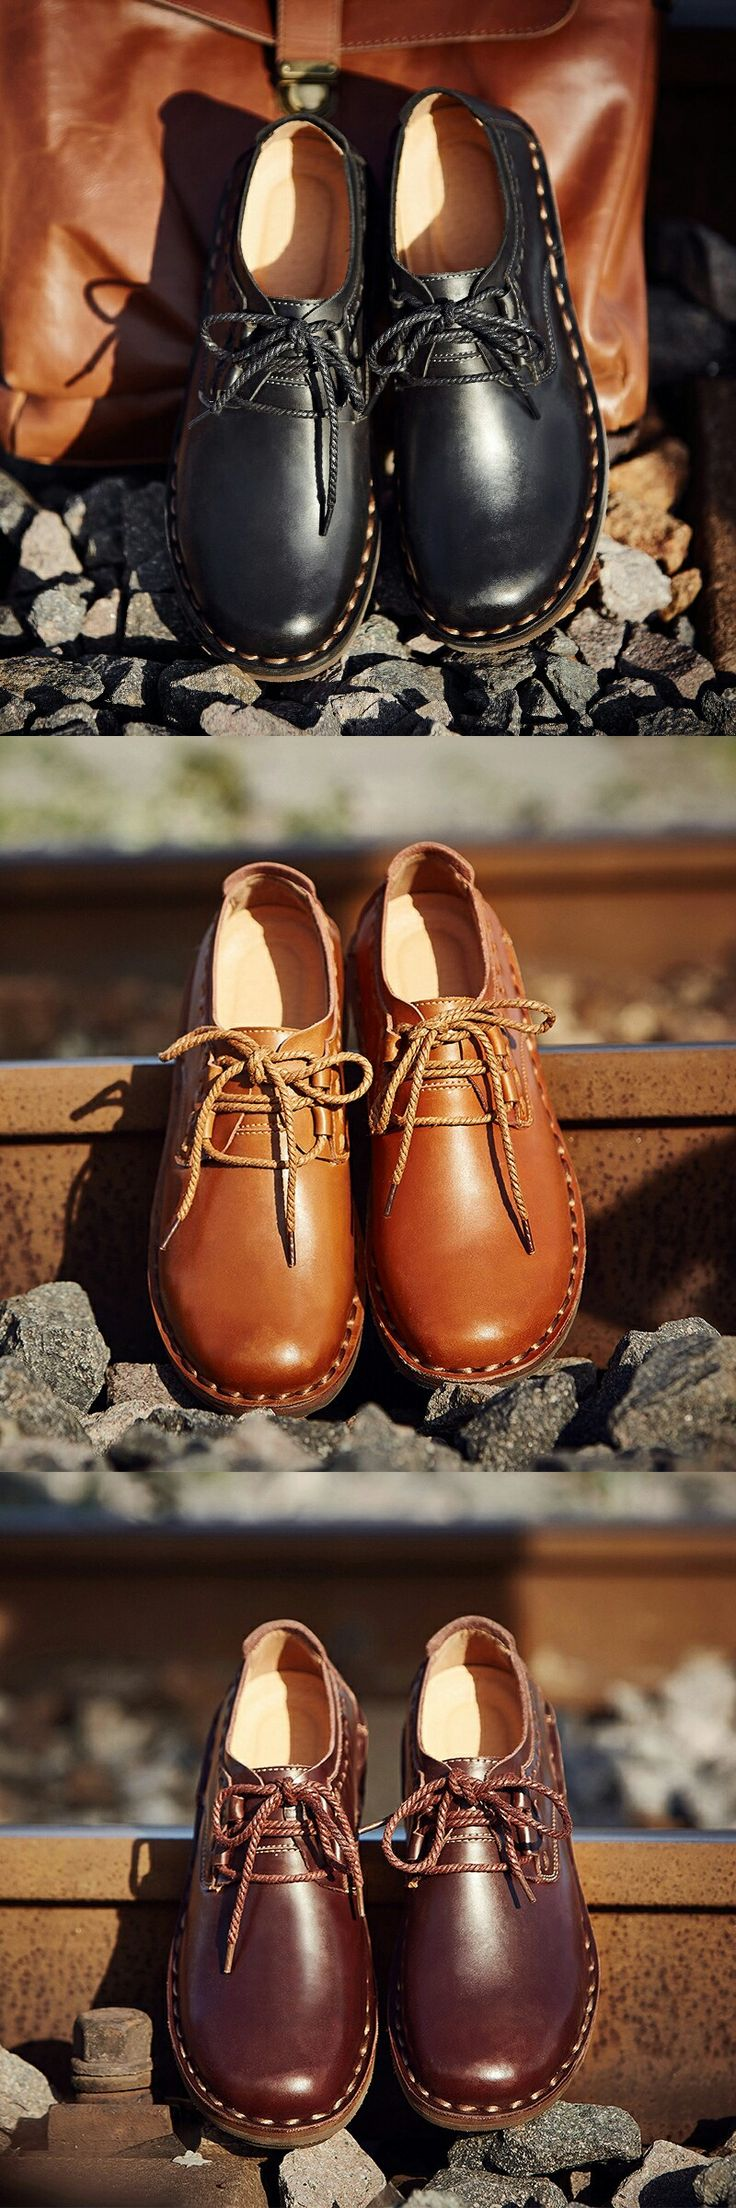 US $34.6 <Click to buy> British Style Bullock Business Men Oxford Shoe